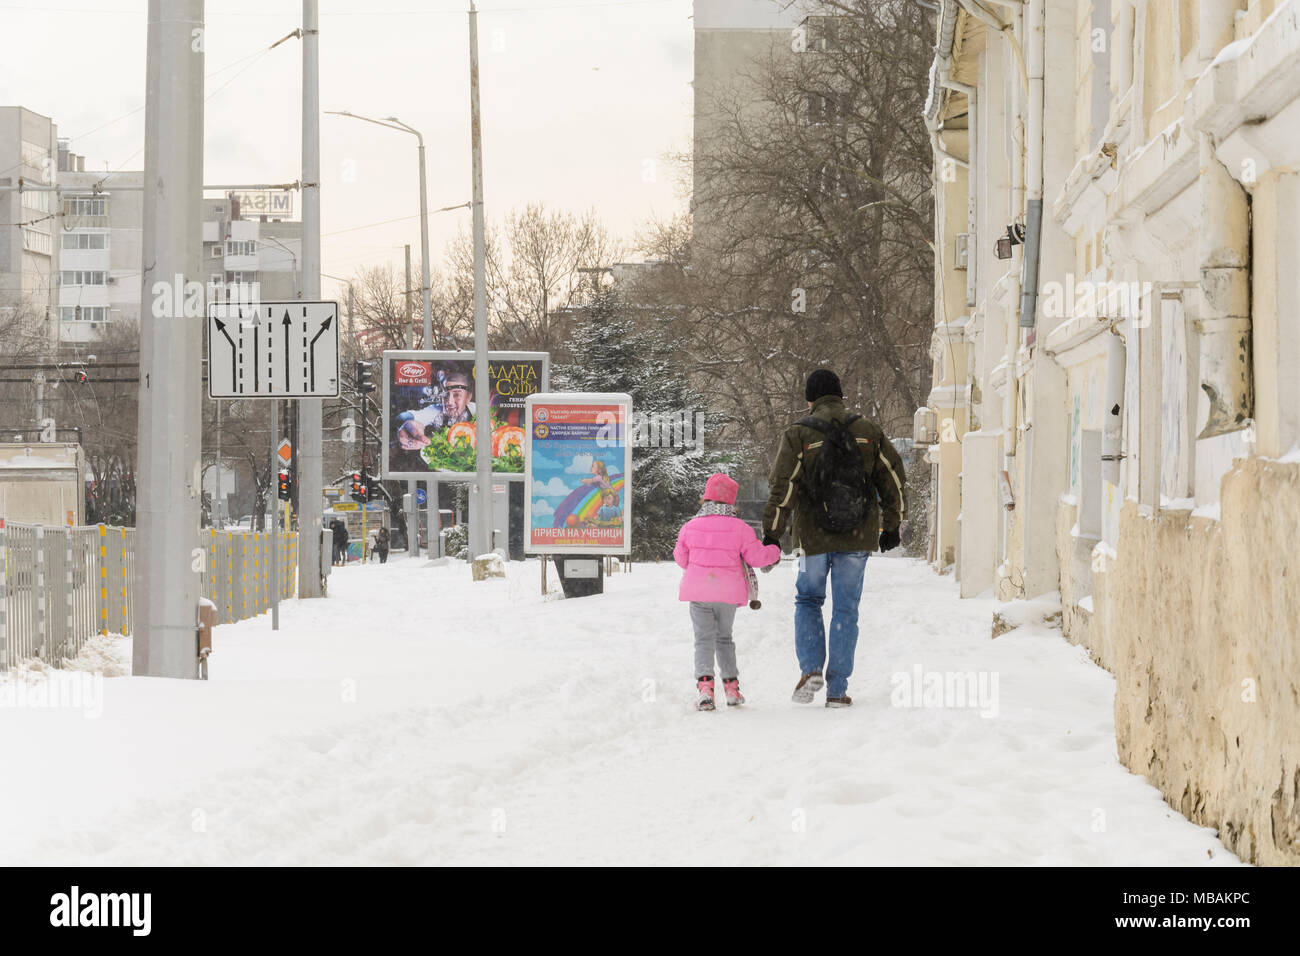 VARNA, BULGARIA, FEBRUARY 28, 2018: father and daughter walking under a snow storm in Varna - Stock Image